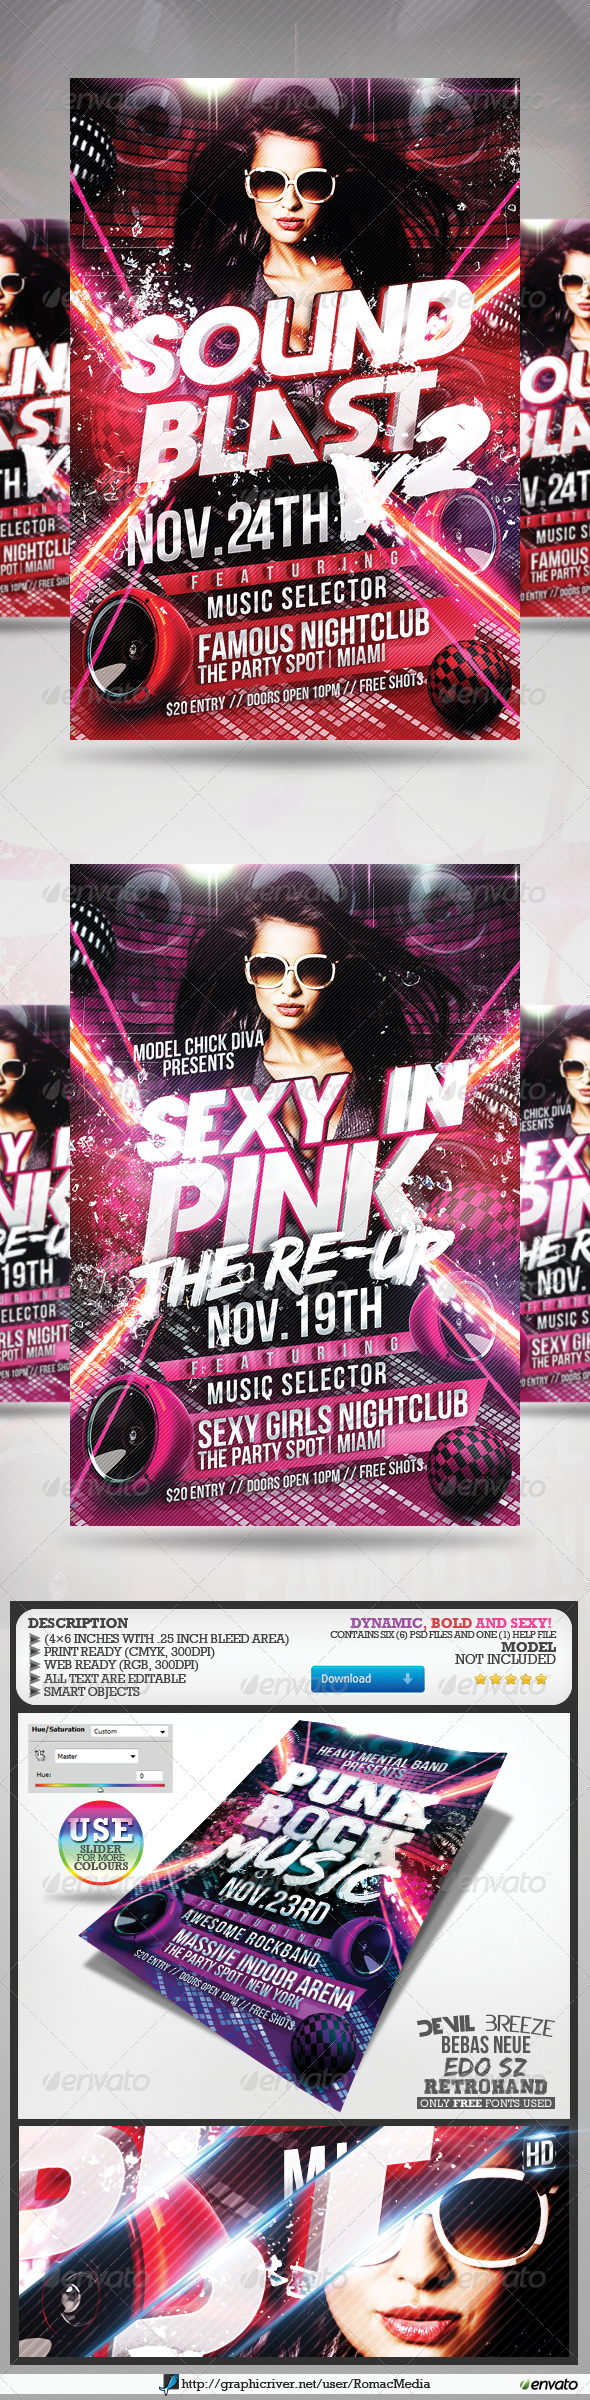 Club Sessions l Sound Blast Vol.2 Party Flyers - Clubs &amp; Parties Events